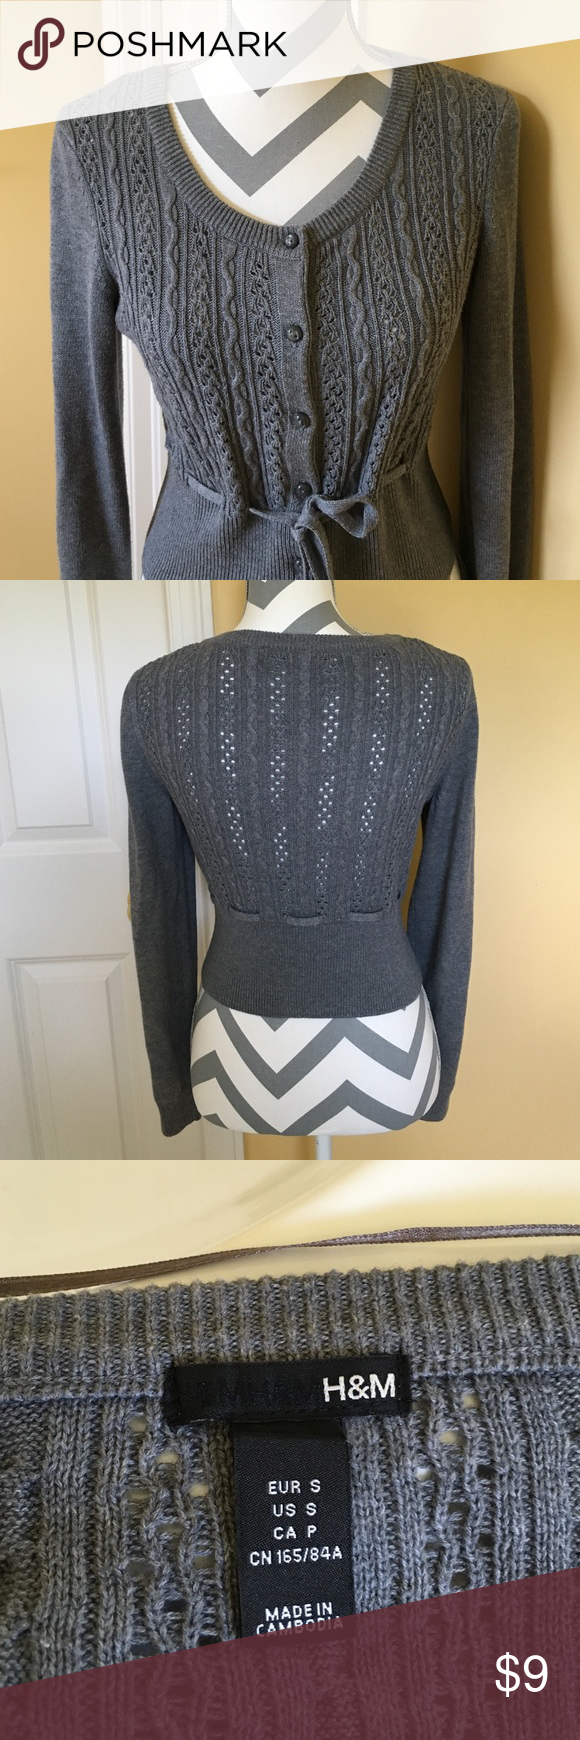 Grey H&M cardigan Super cute and comfortable grey cardigan, worn a few times, in perfect condition. Size S. H&M Sweaters Cardigans